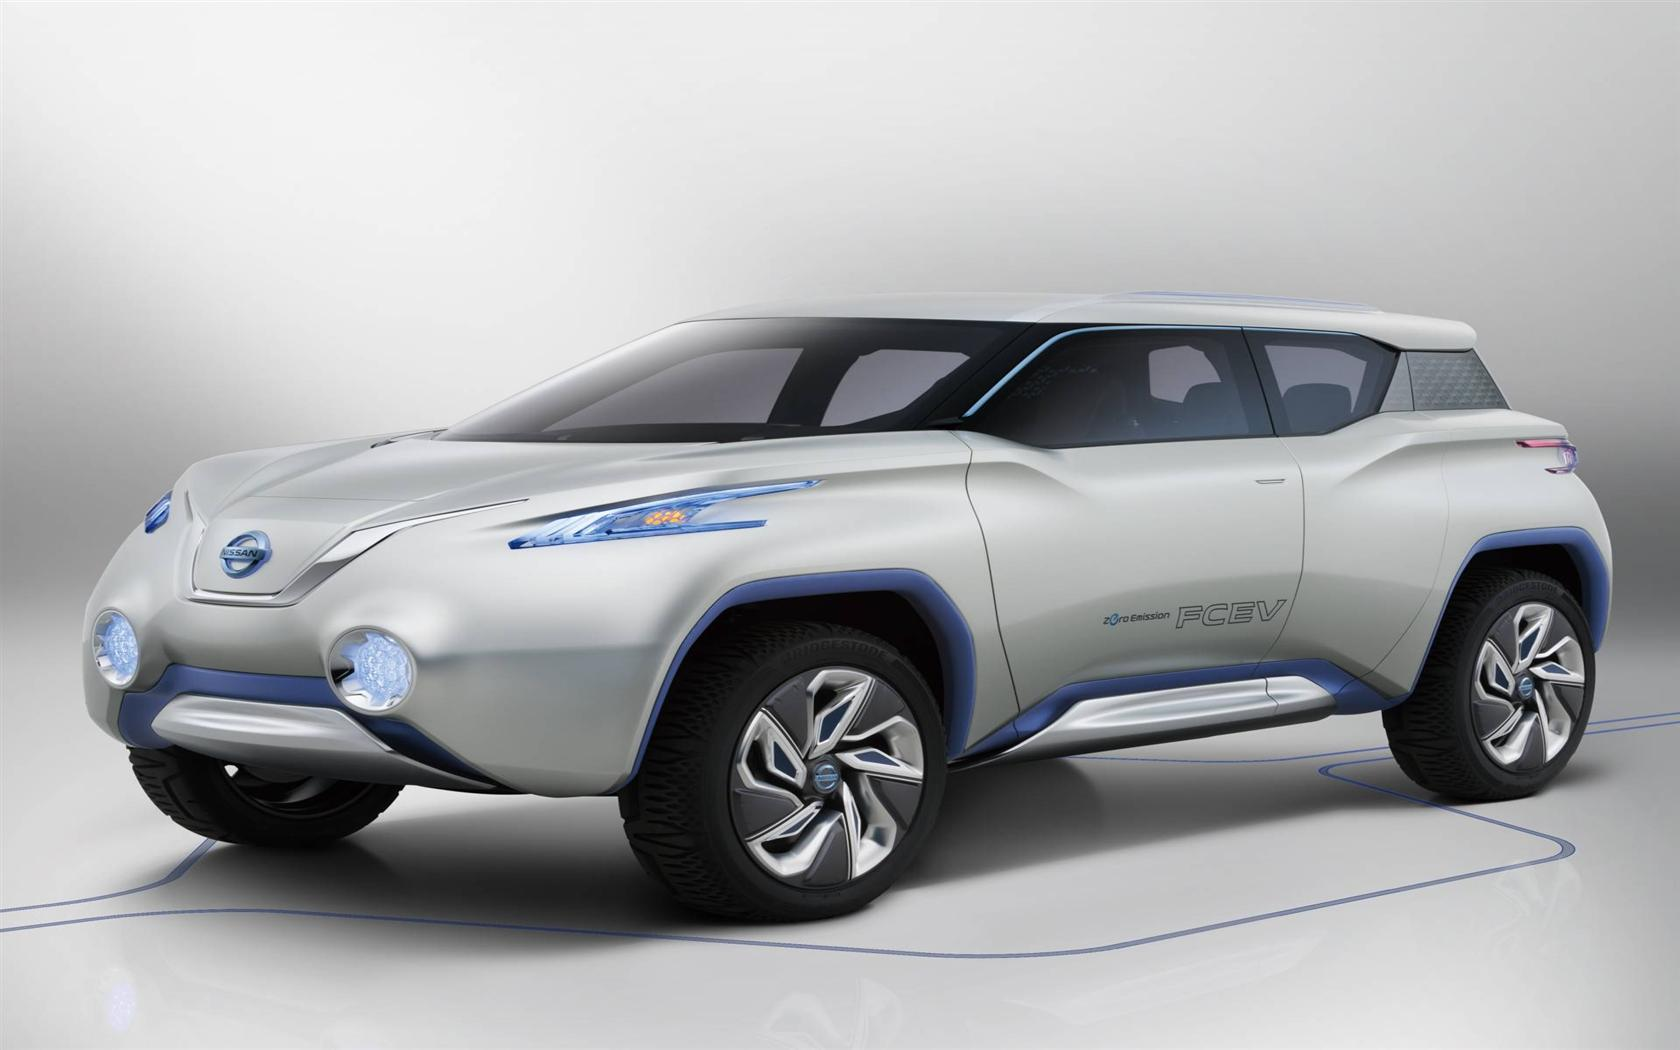 2013 Nissan TeRRA SUV Concept Image. https://www ...